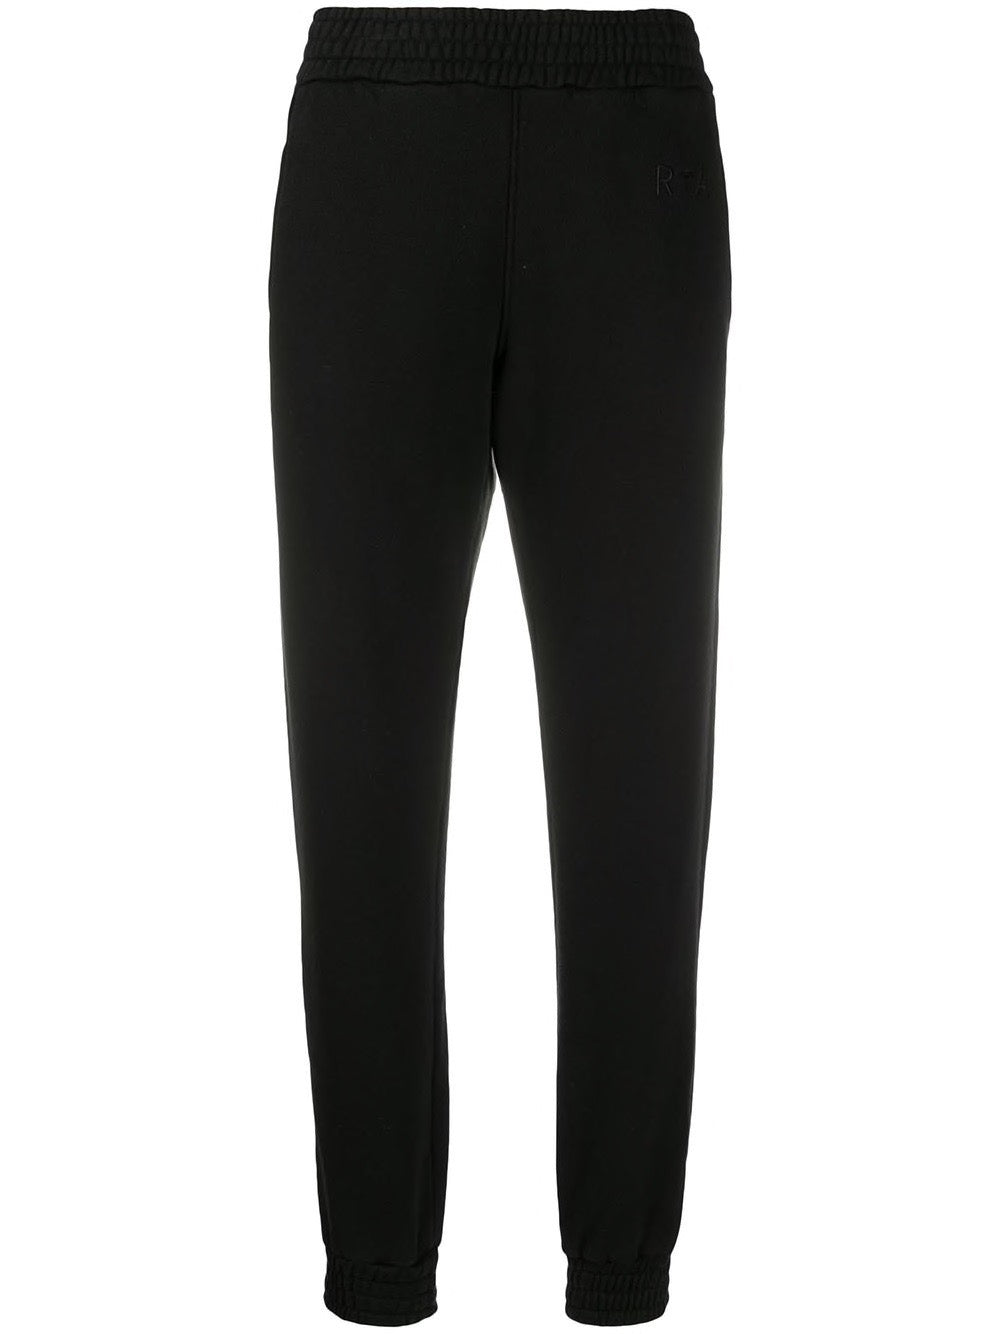 Black Sydney Sweatpants